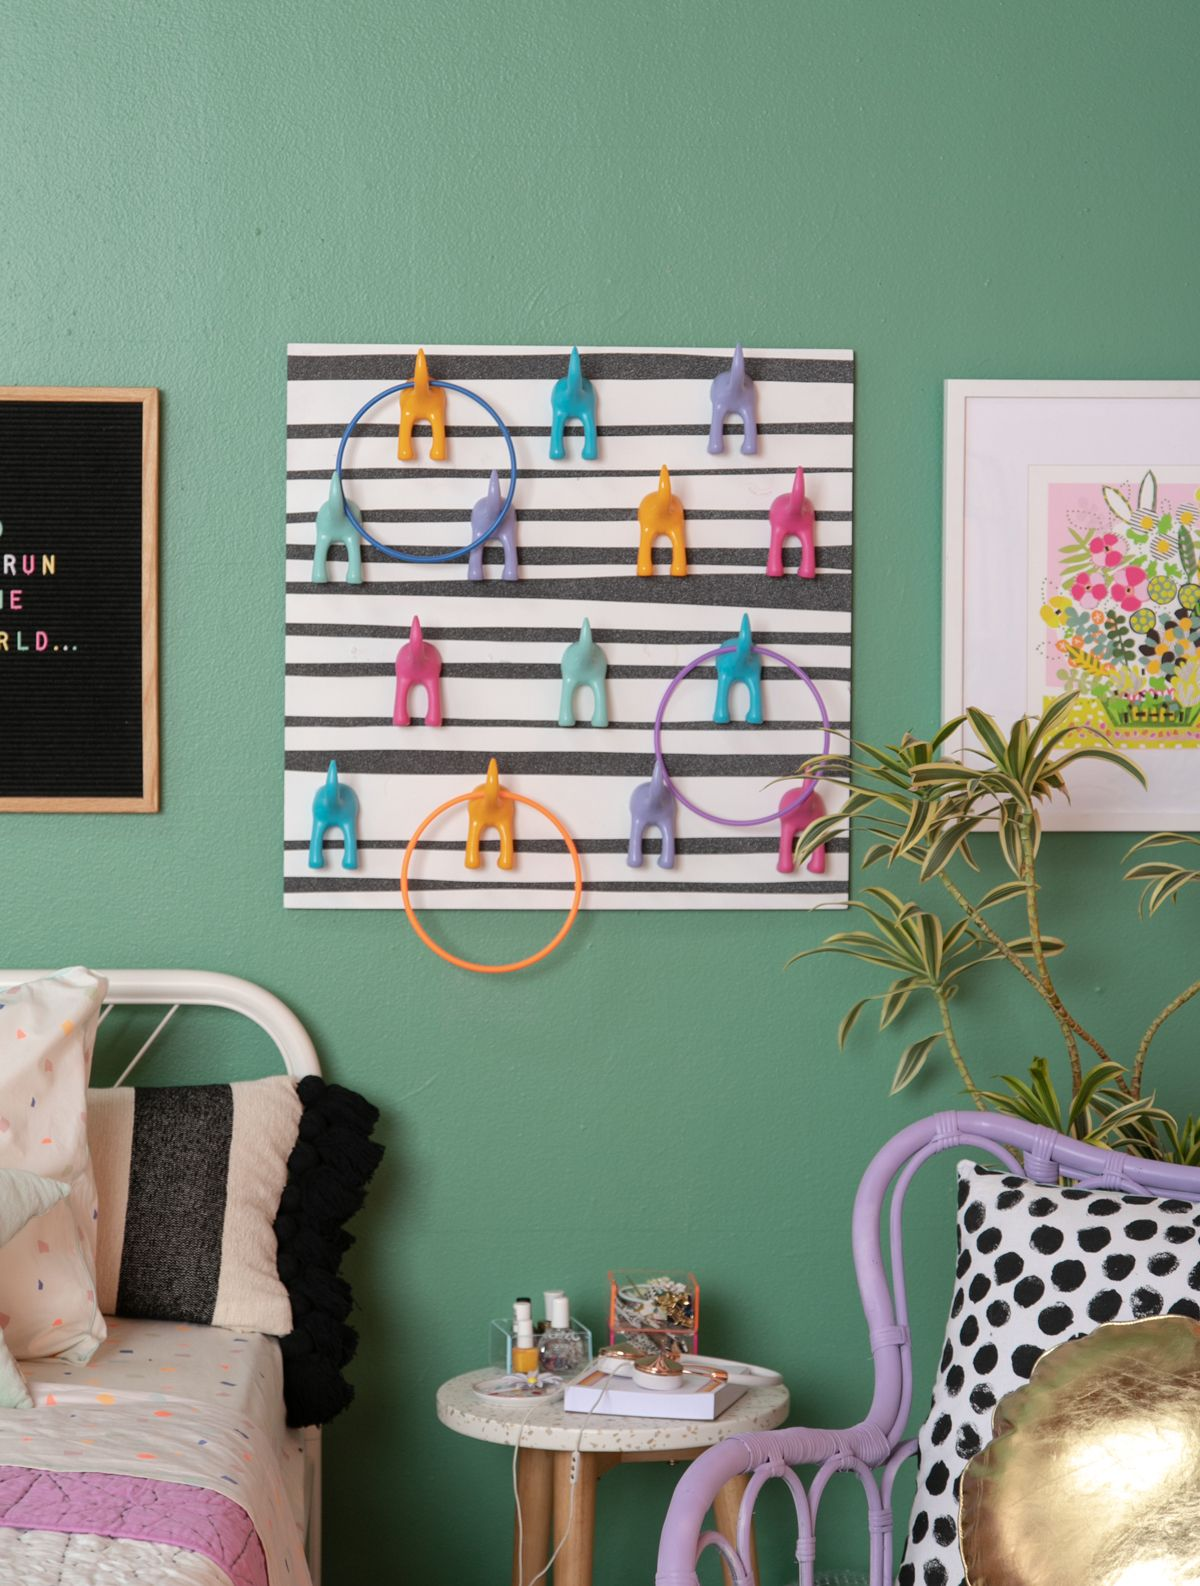 weekend project: a ring toss diy | Make It | Ring toss, Rings cool